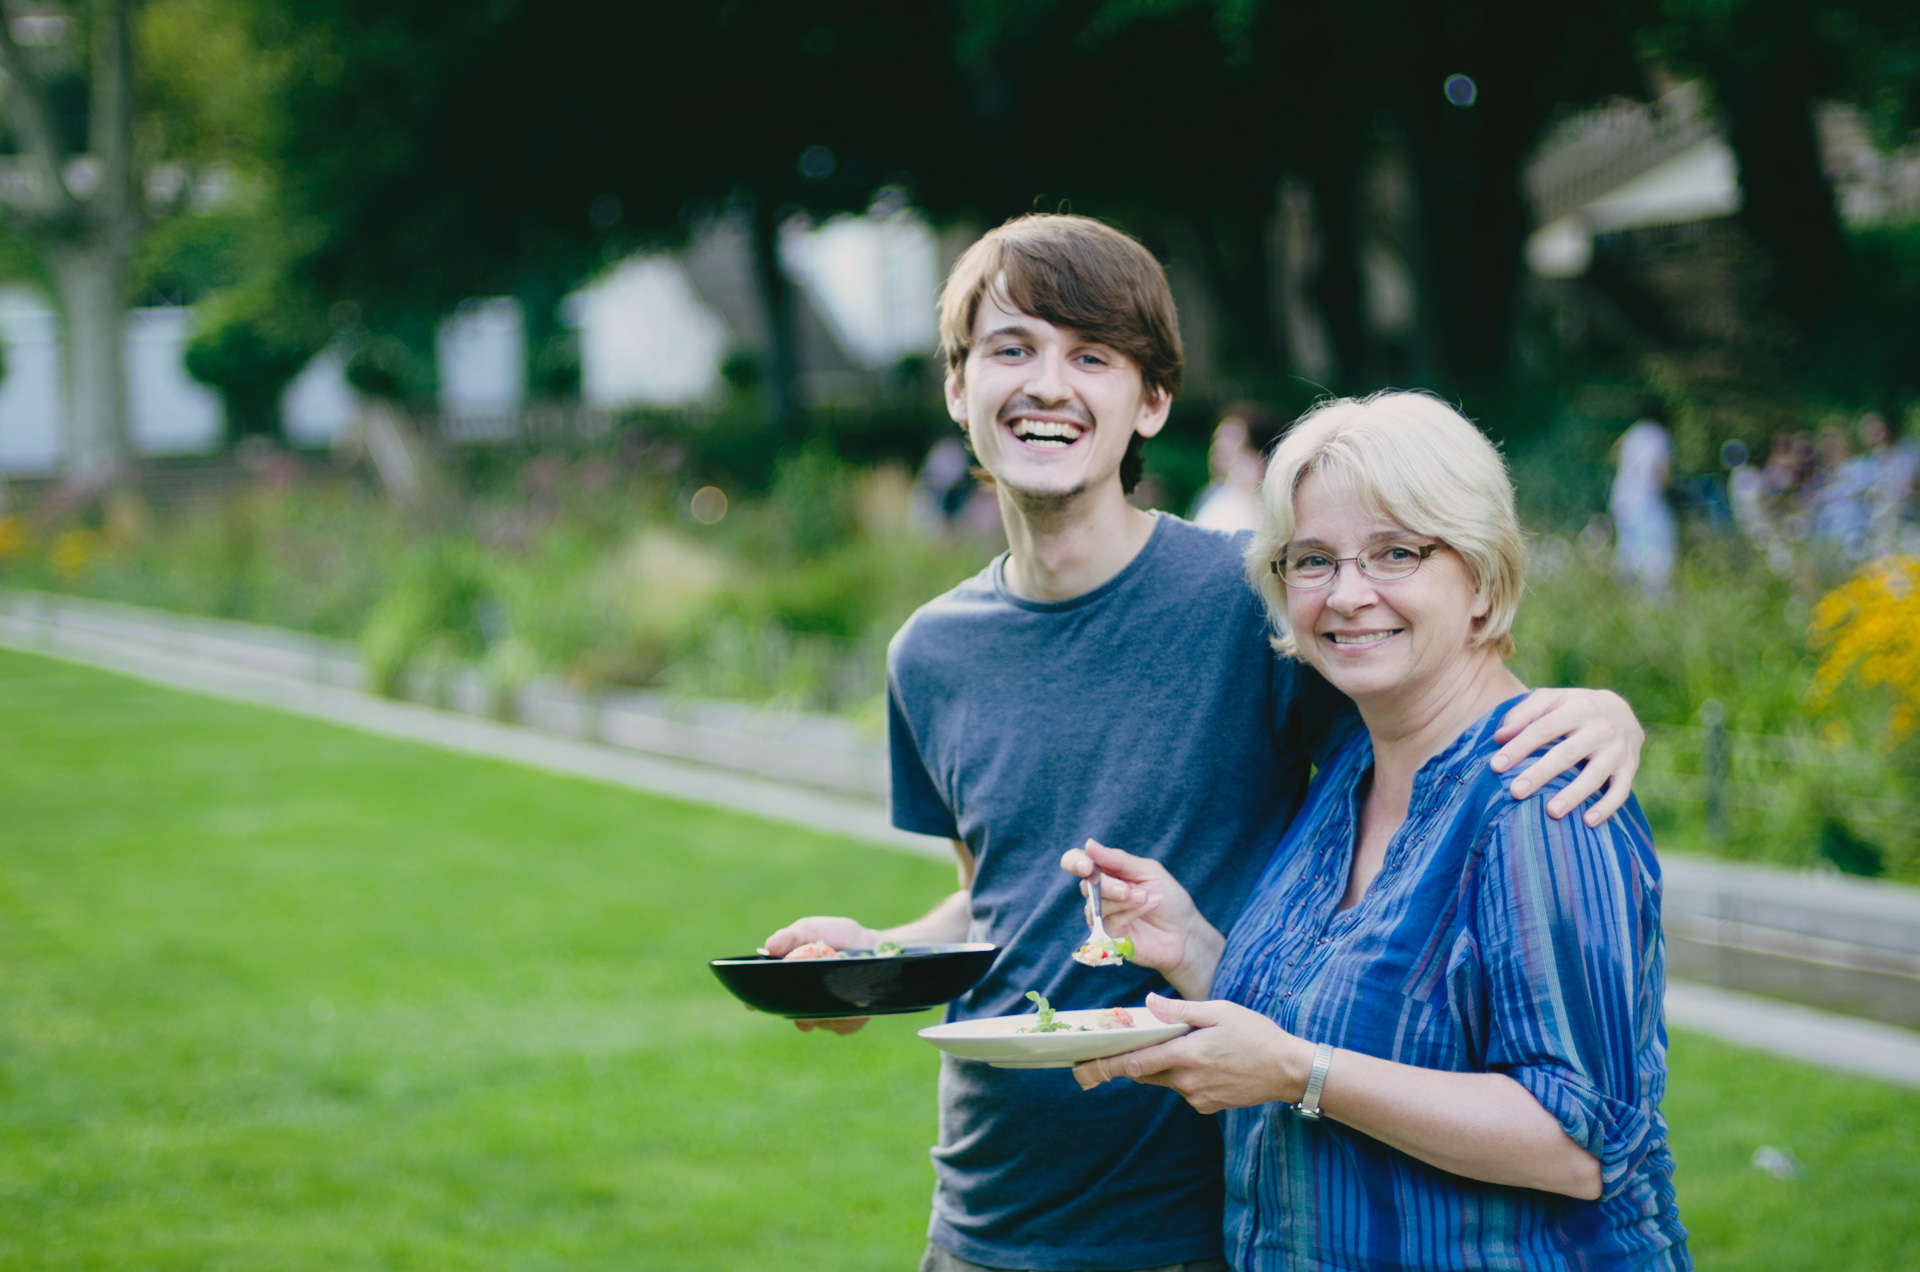 Foodadit family – Alastair and his Mum, Anne Coates